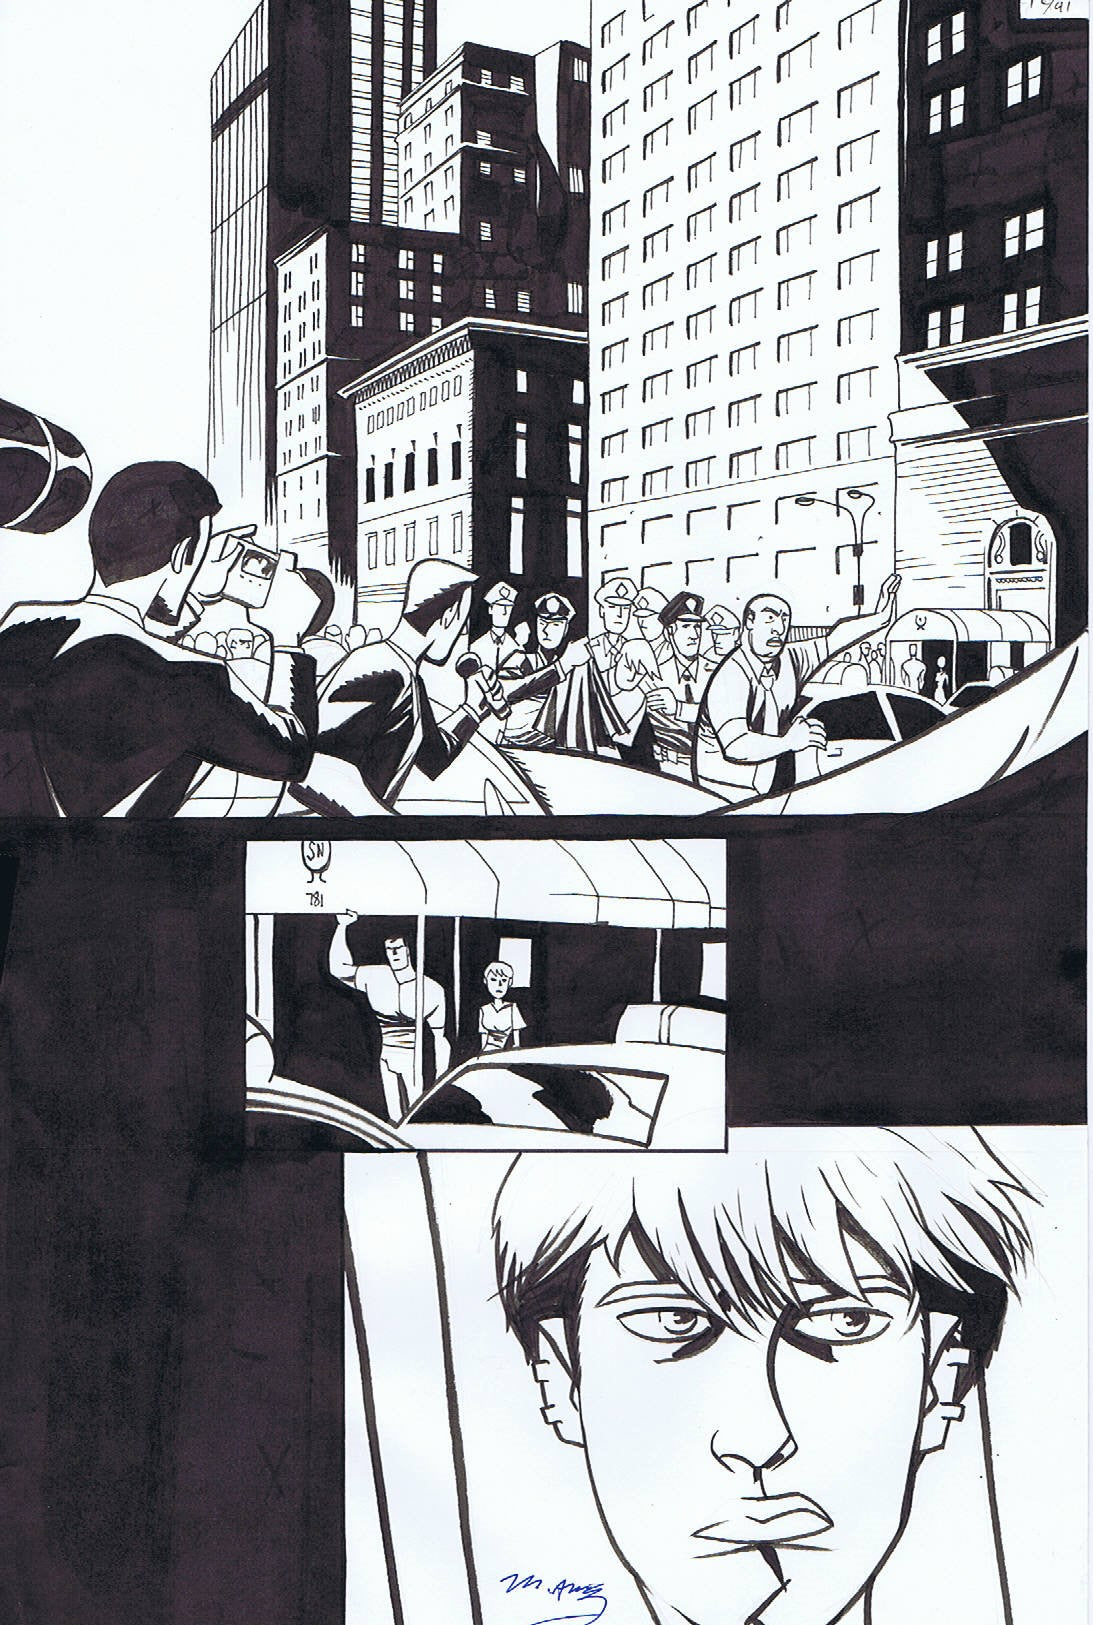 Copy of POWERS V.II #12 INTERIOR PAGE FEATURING DEENA & WALKER